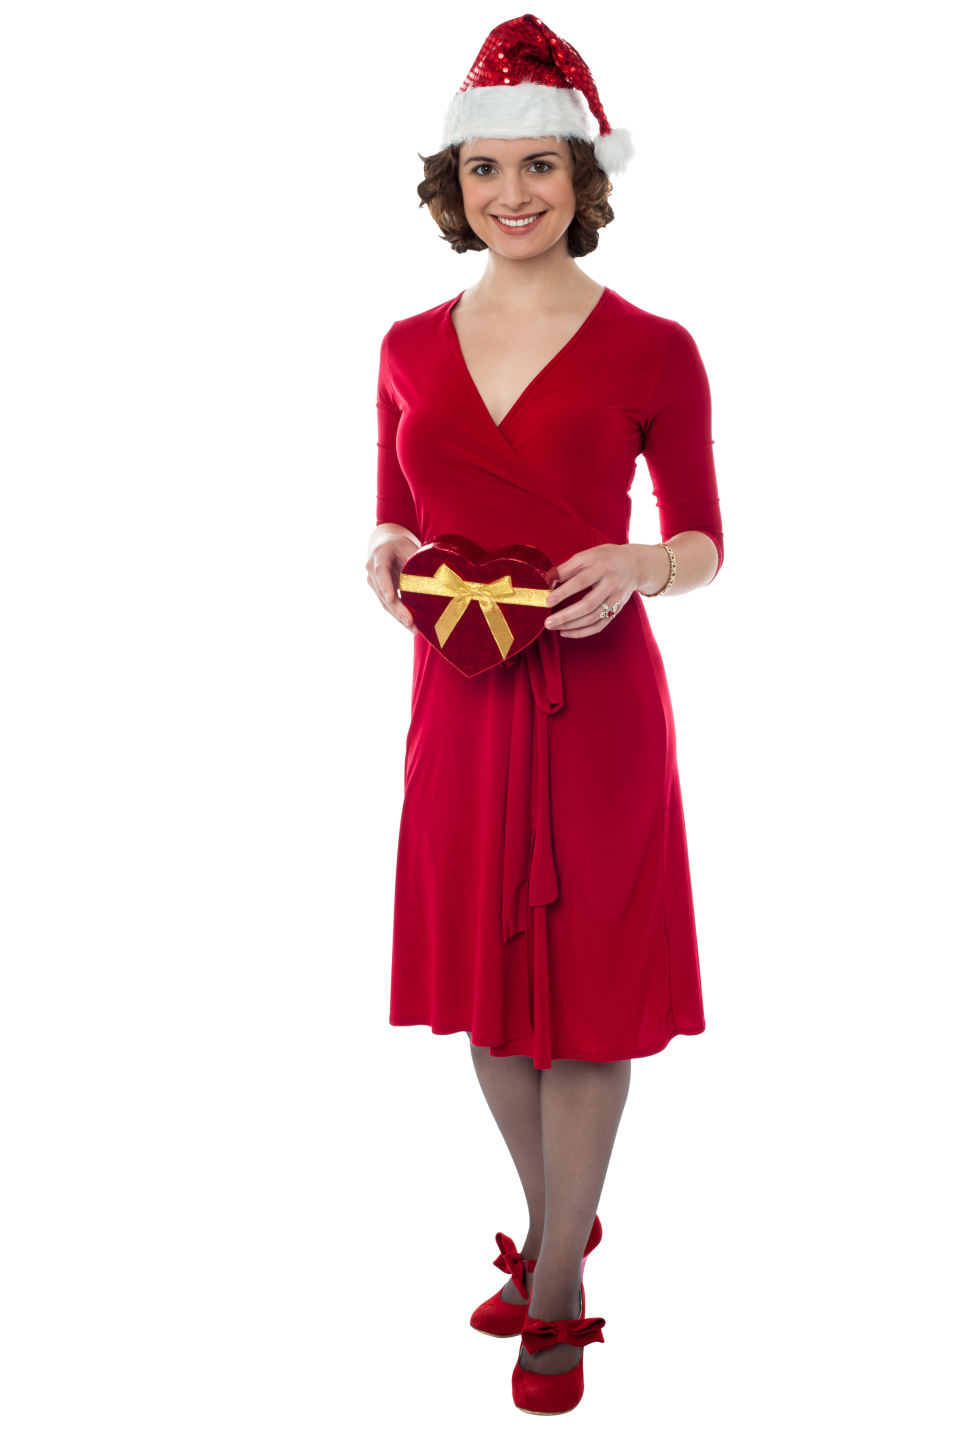 Female Santa Claus with Red Dress PNG Image